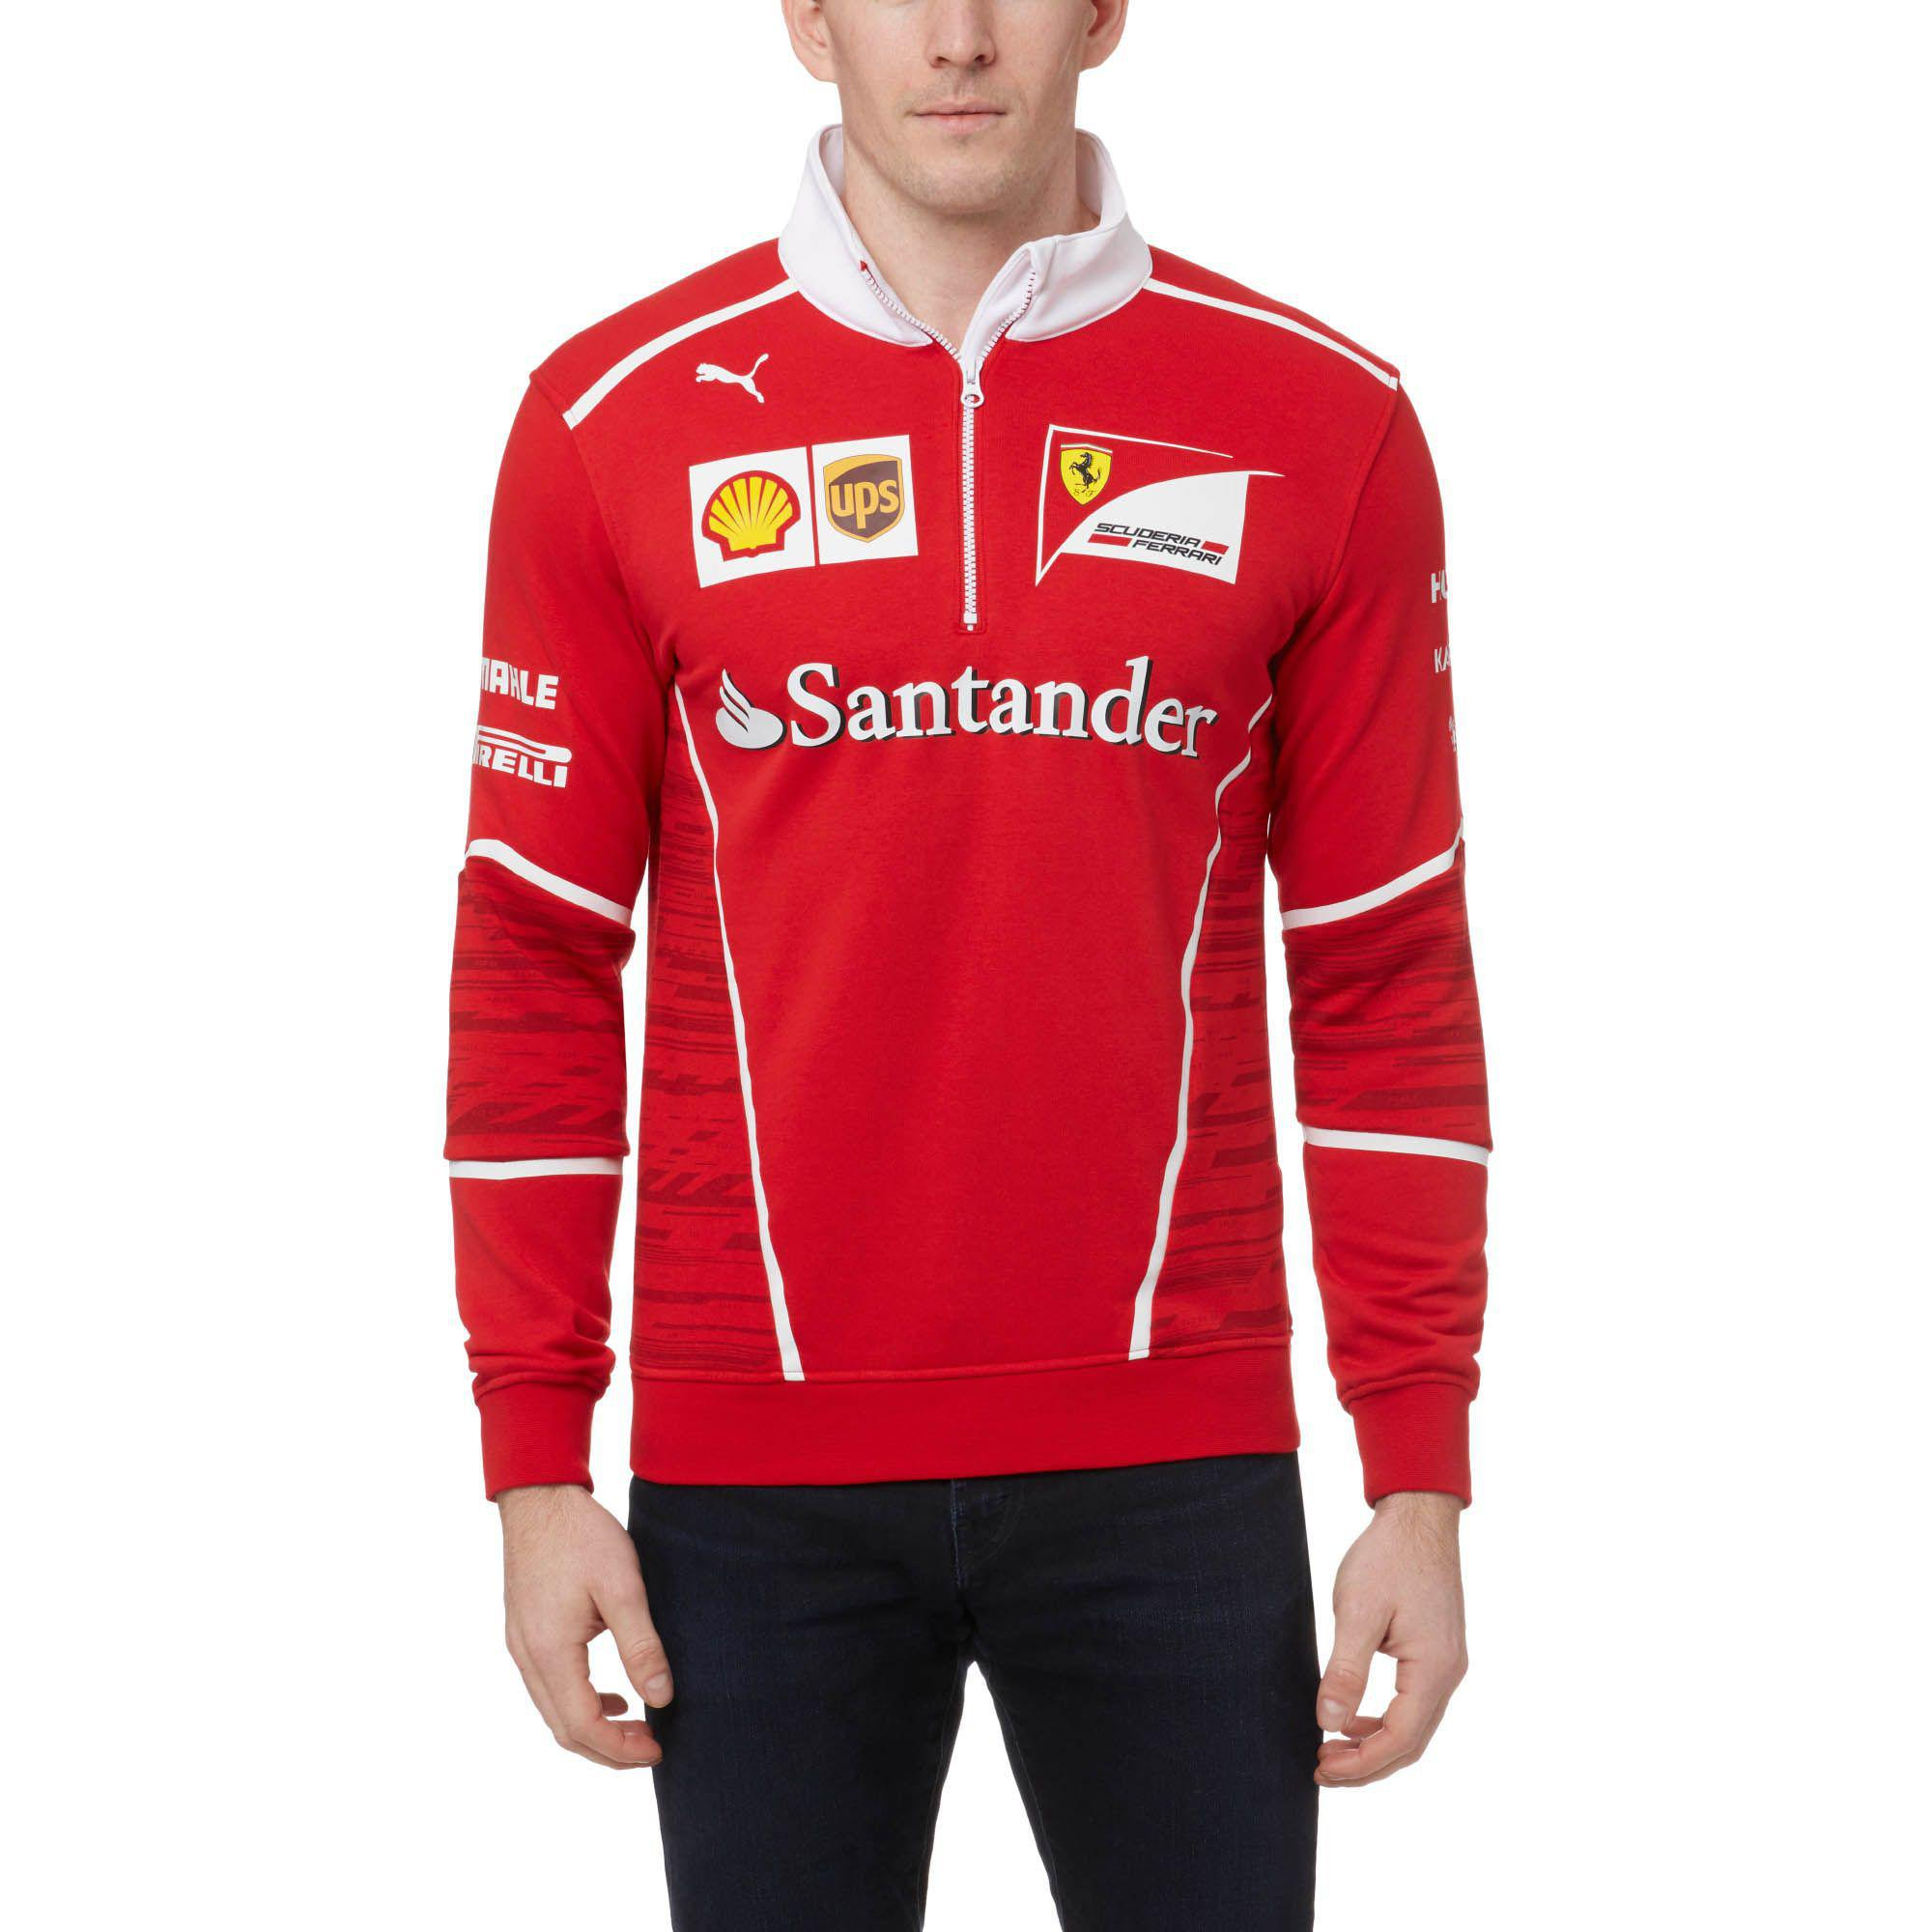 5b3877c99097 Lyst - PUMA Ferrari Team Half-zip Sweatshirt in Red for Men